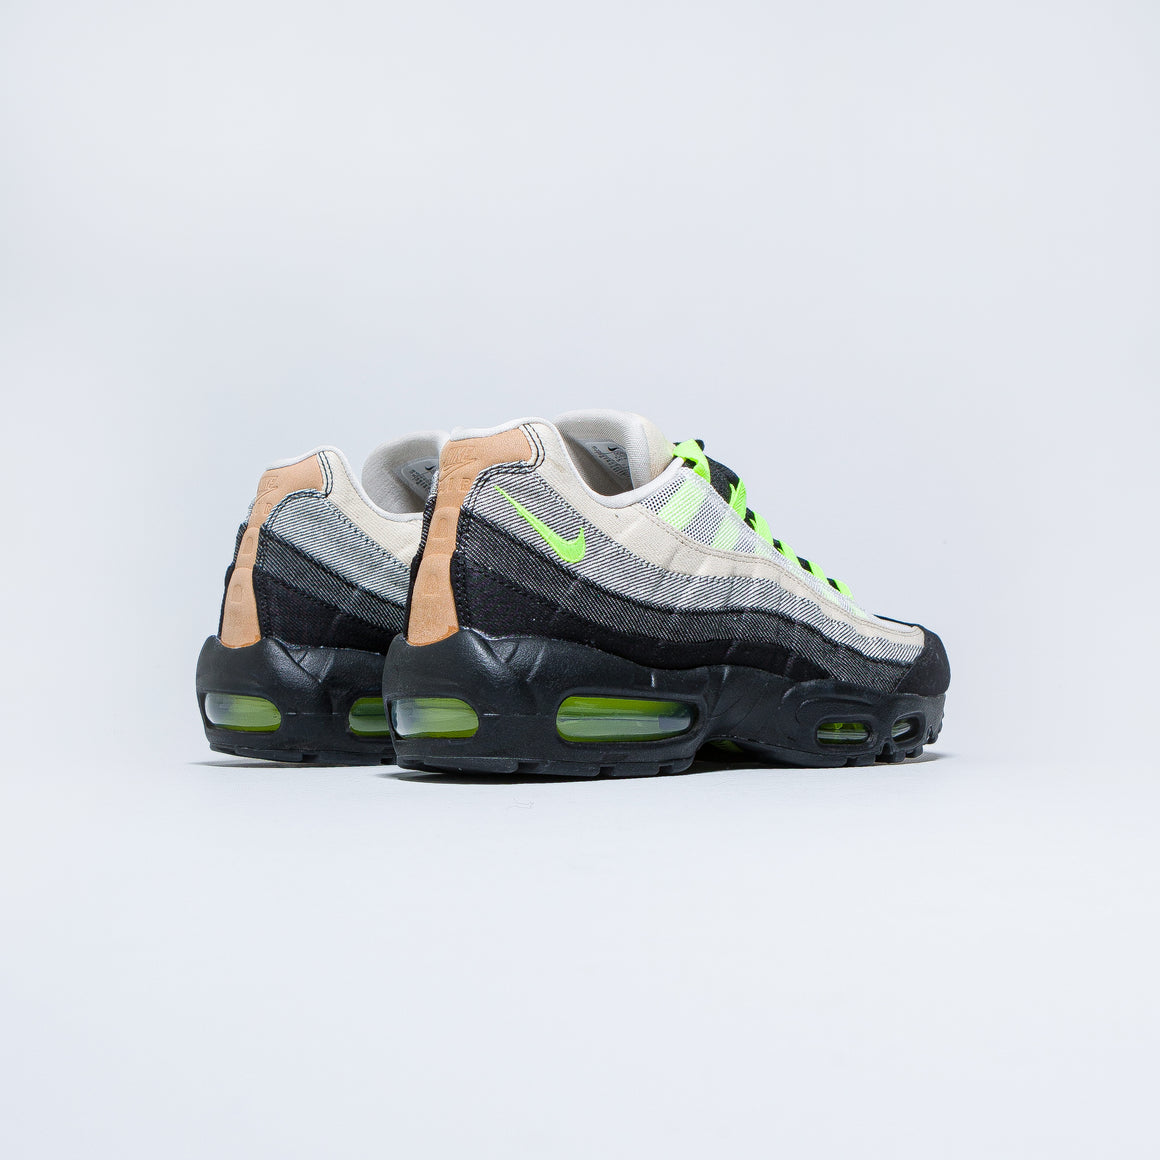 Nike - Air Max 95 x Denham - Black/Volt-Summit White - Up There